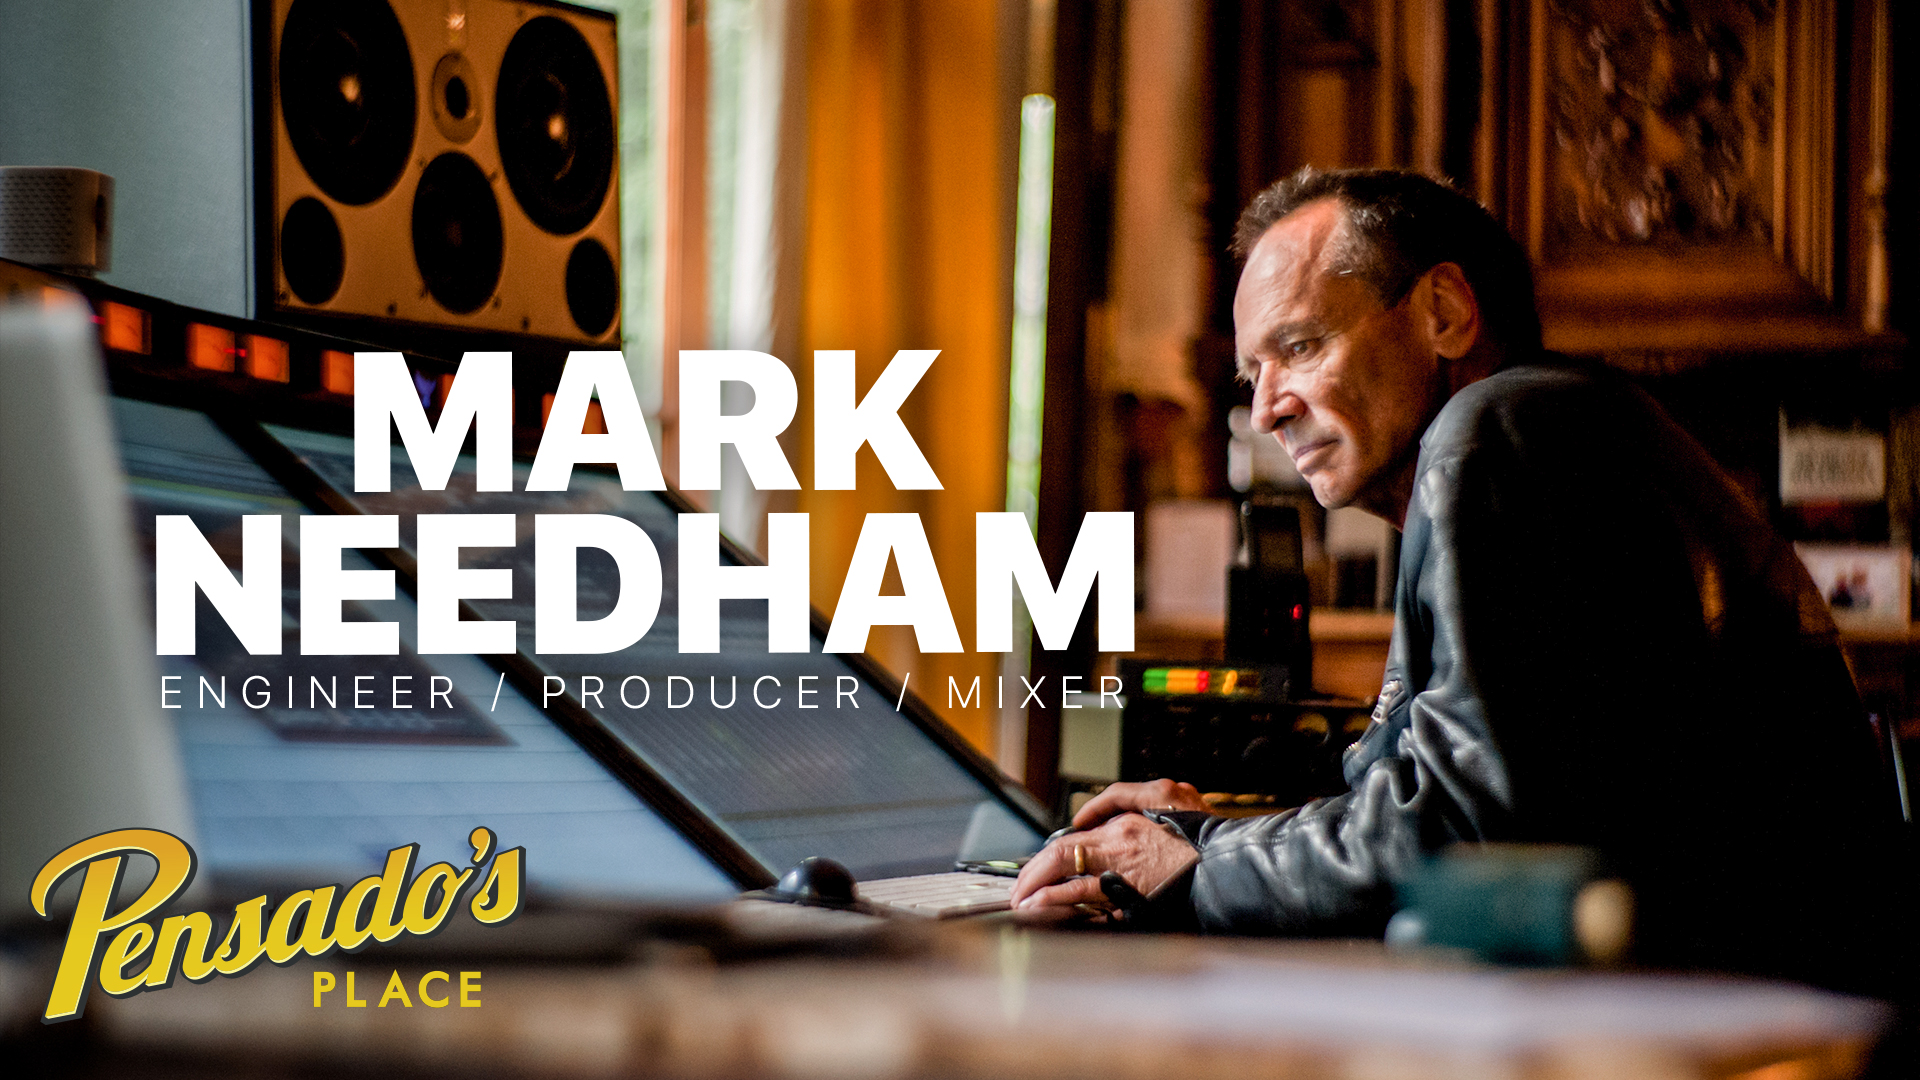 Engineer / Producer / Mixer, Mark Needham